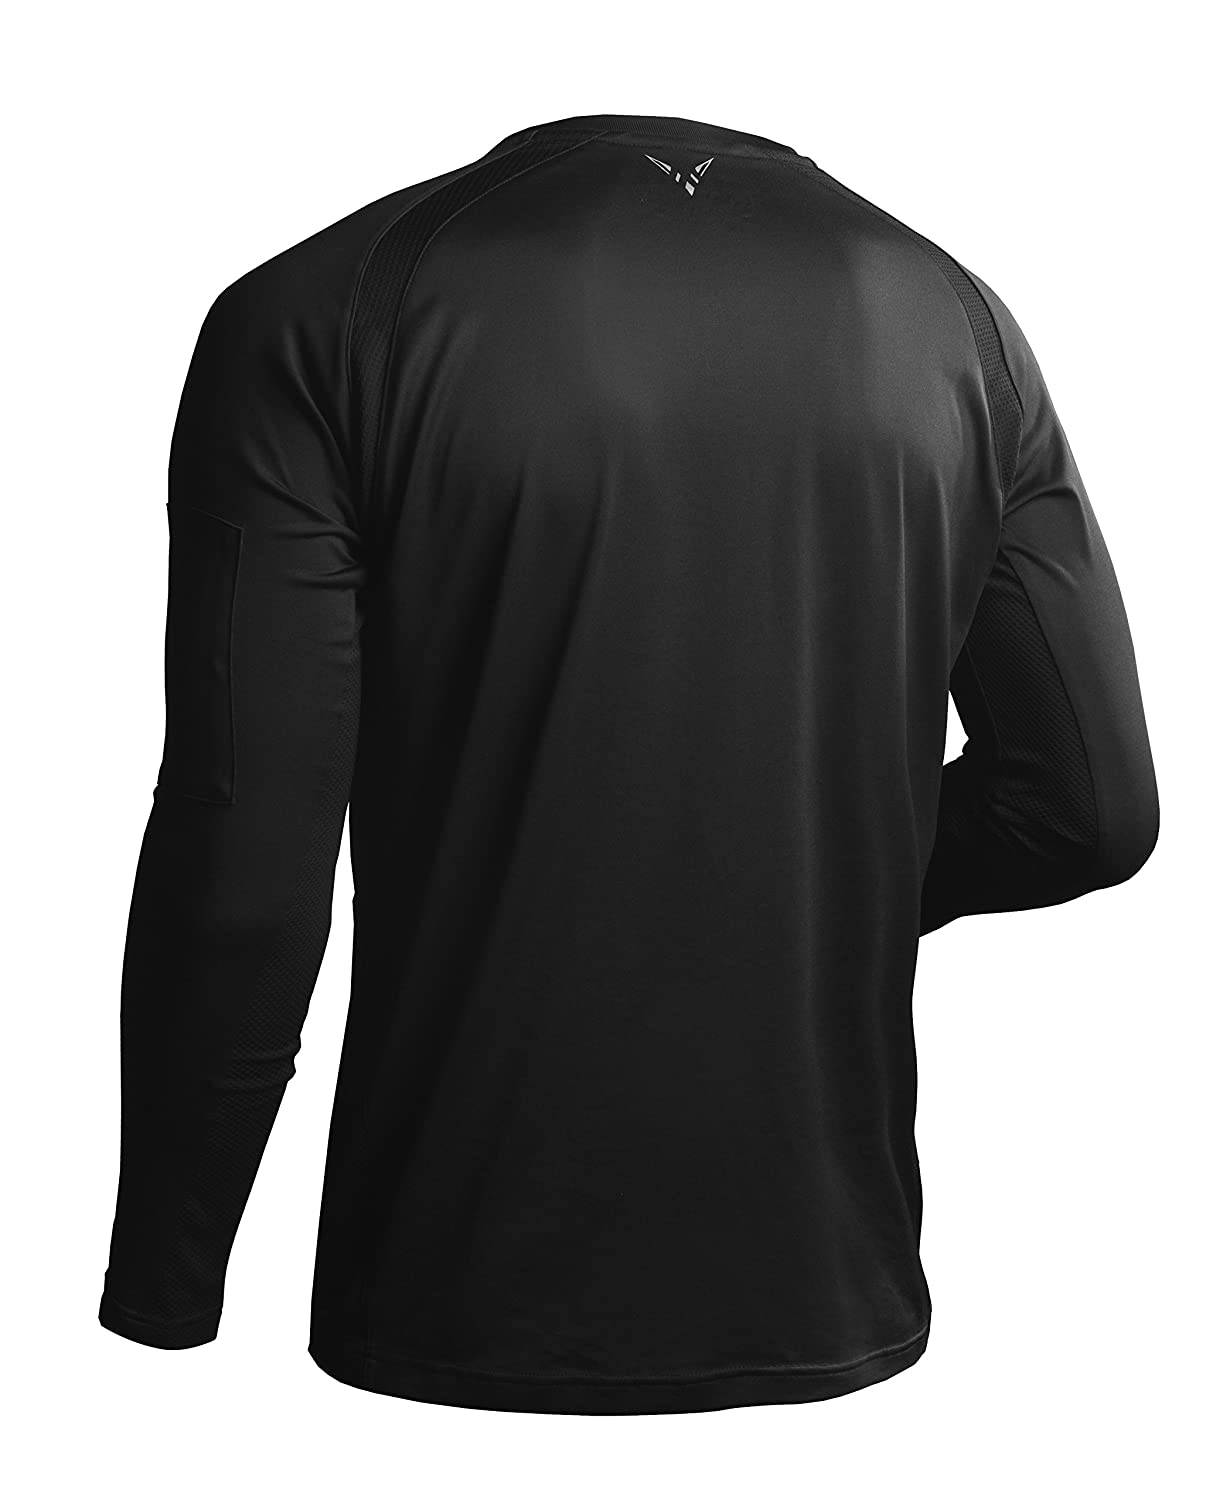 Vaiden Triton Mens Long Sleeve Workout Shirt Using Patented Astronaut Technology